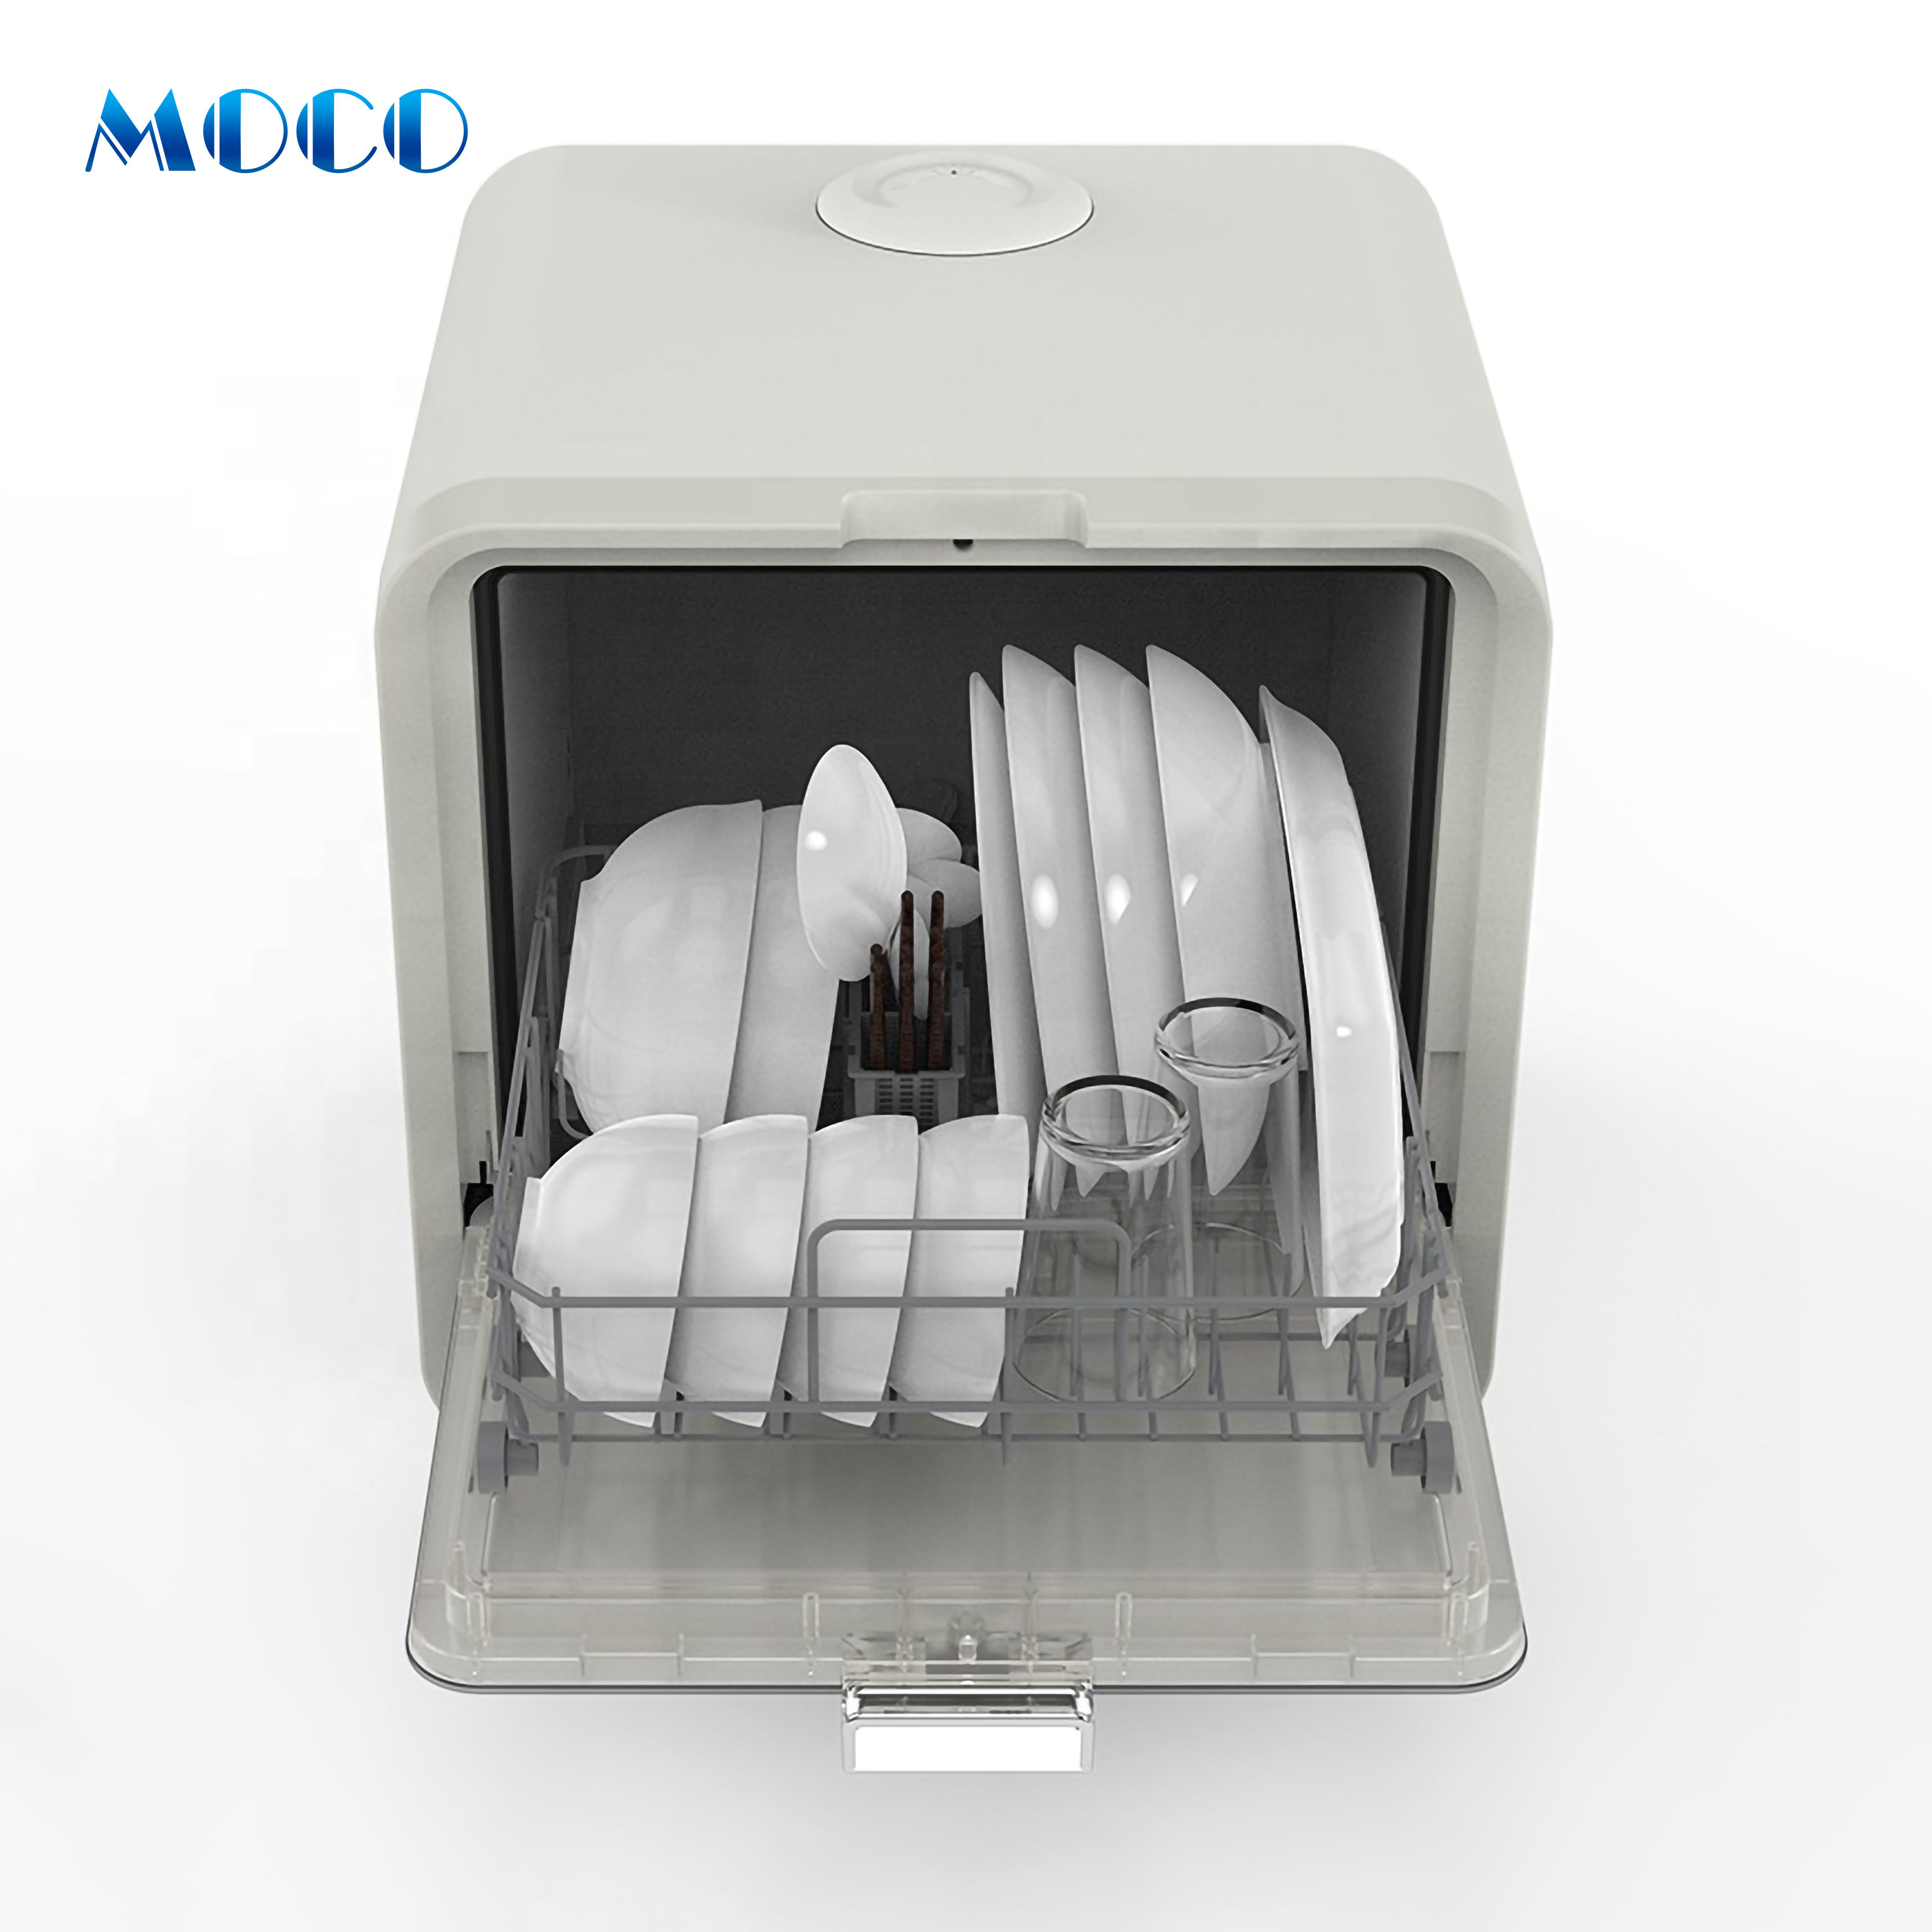 Home use Portable Multi-function dish washer